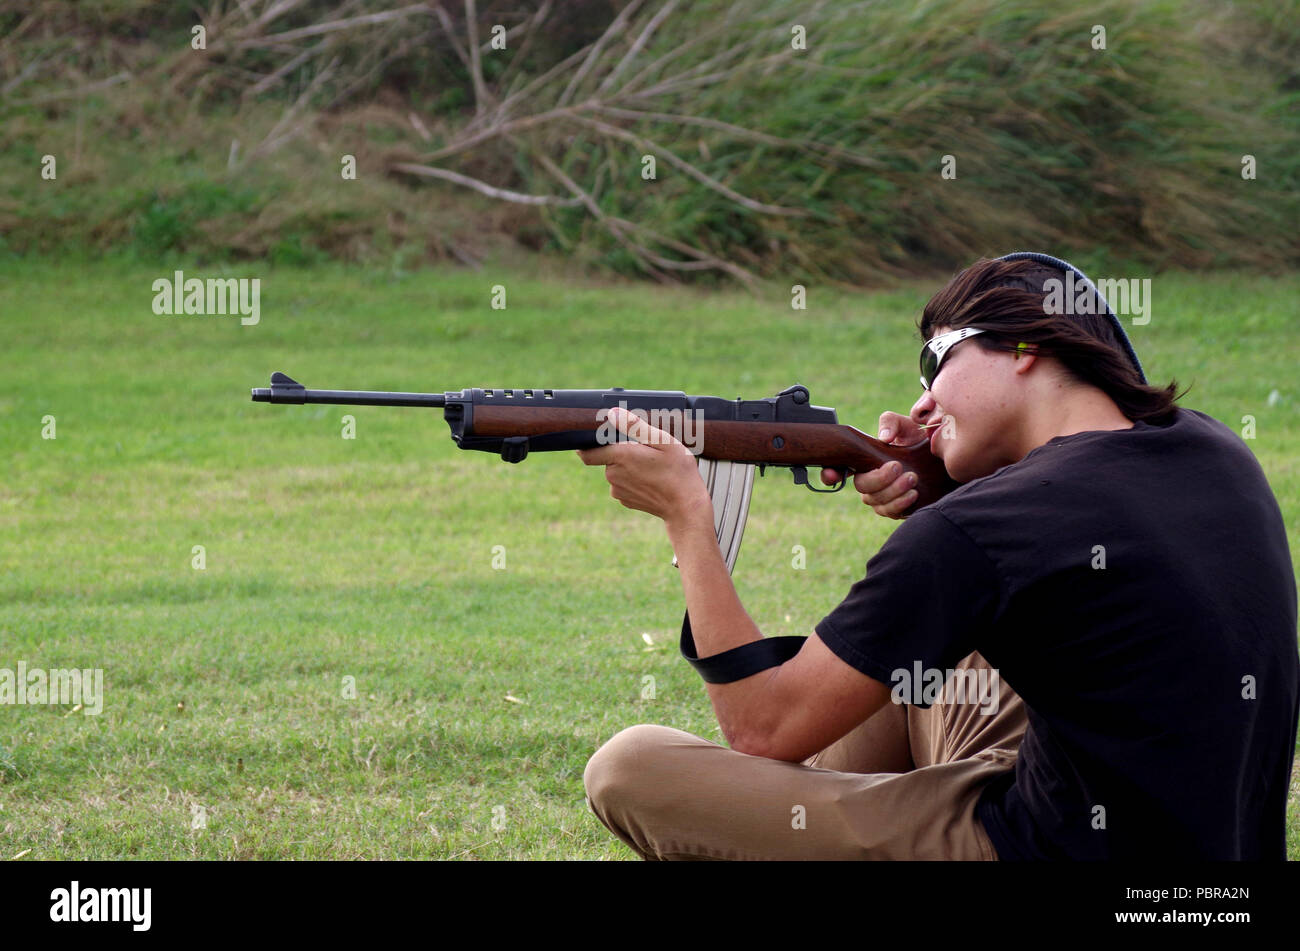 Young man fires a Ruger Mini 14 carbine at a gun range in